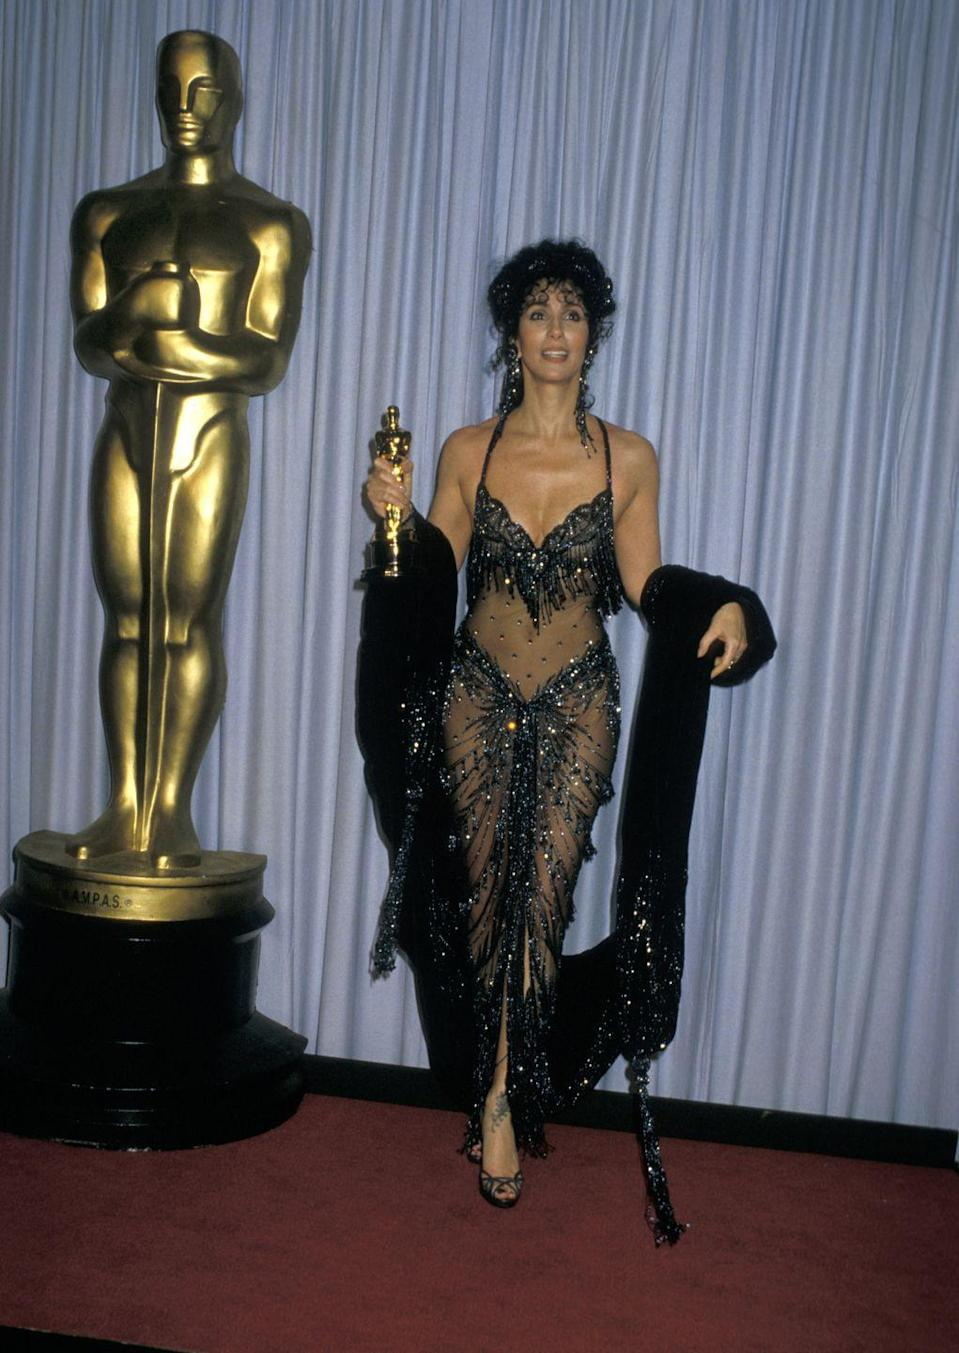 <p>Cher holds her Oscar for best actress in the film <em>Moonstruck</em>.</p>